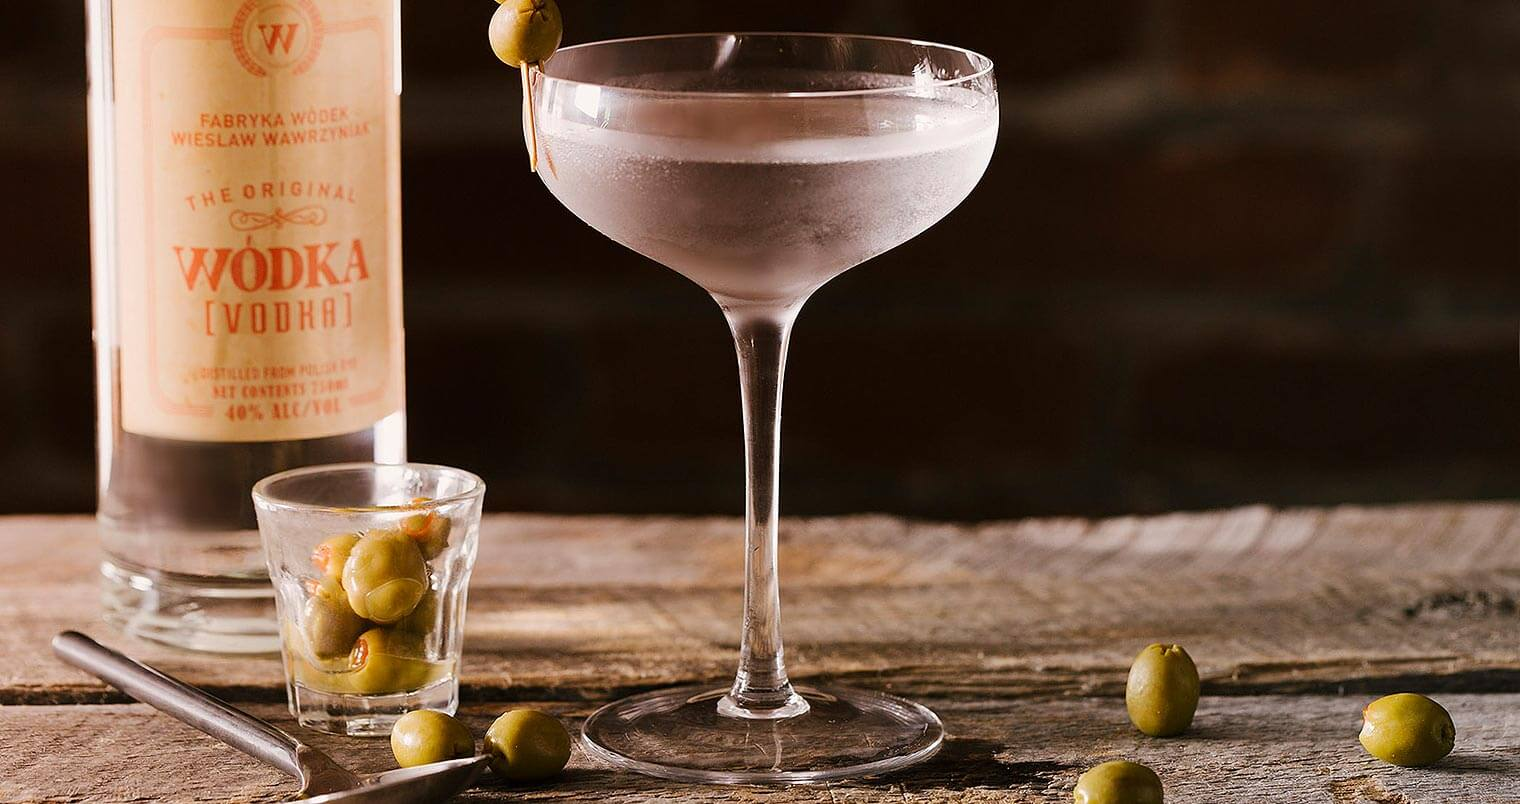 Wódka Martini, featured image, bottle and cocktail, olives